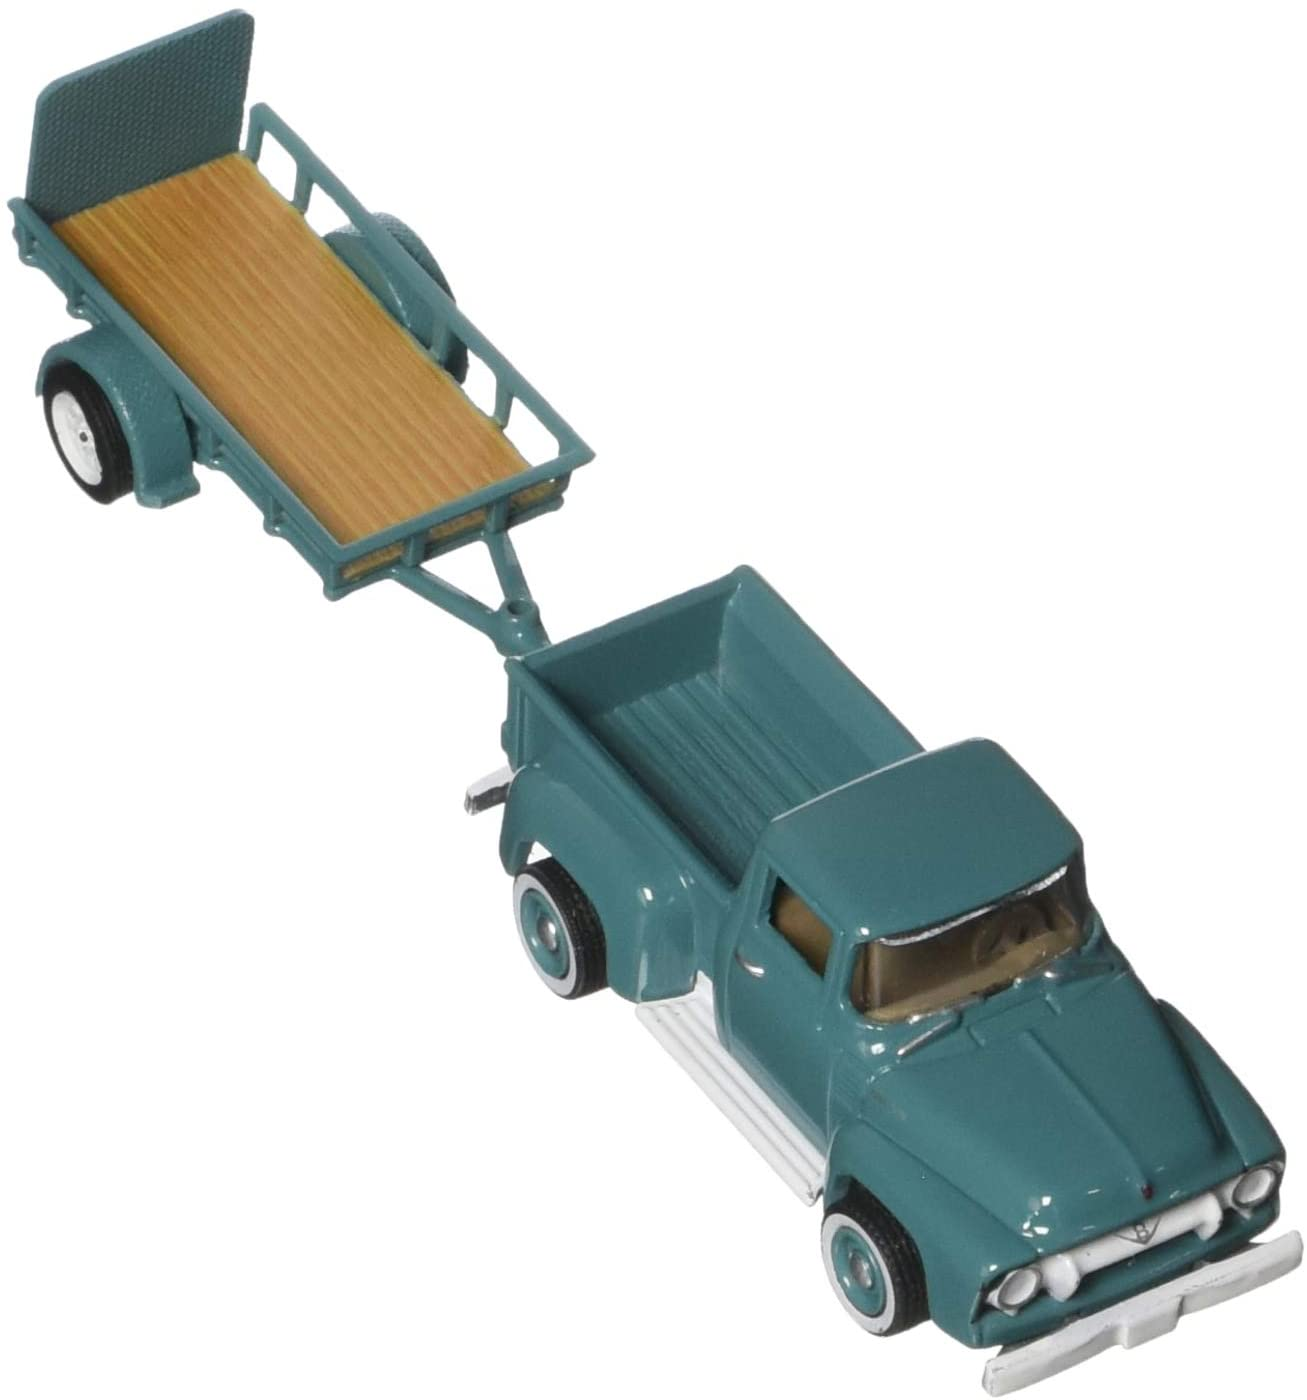 Greenlight 1:64 Hitch & Tow Series 13 1954 Ford F-100 and Utility Trailer Vehicle